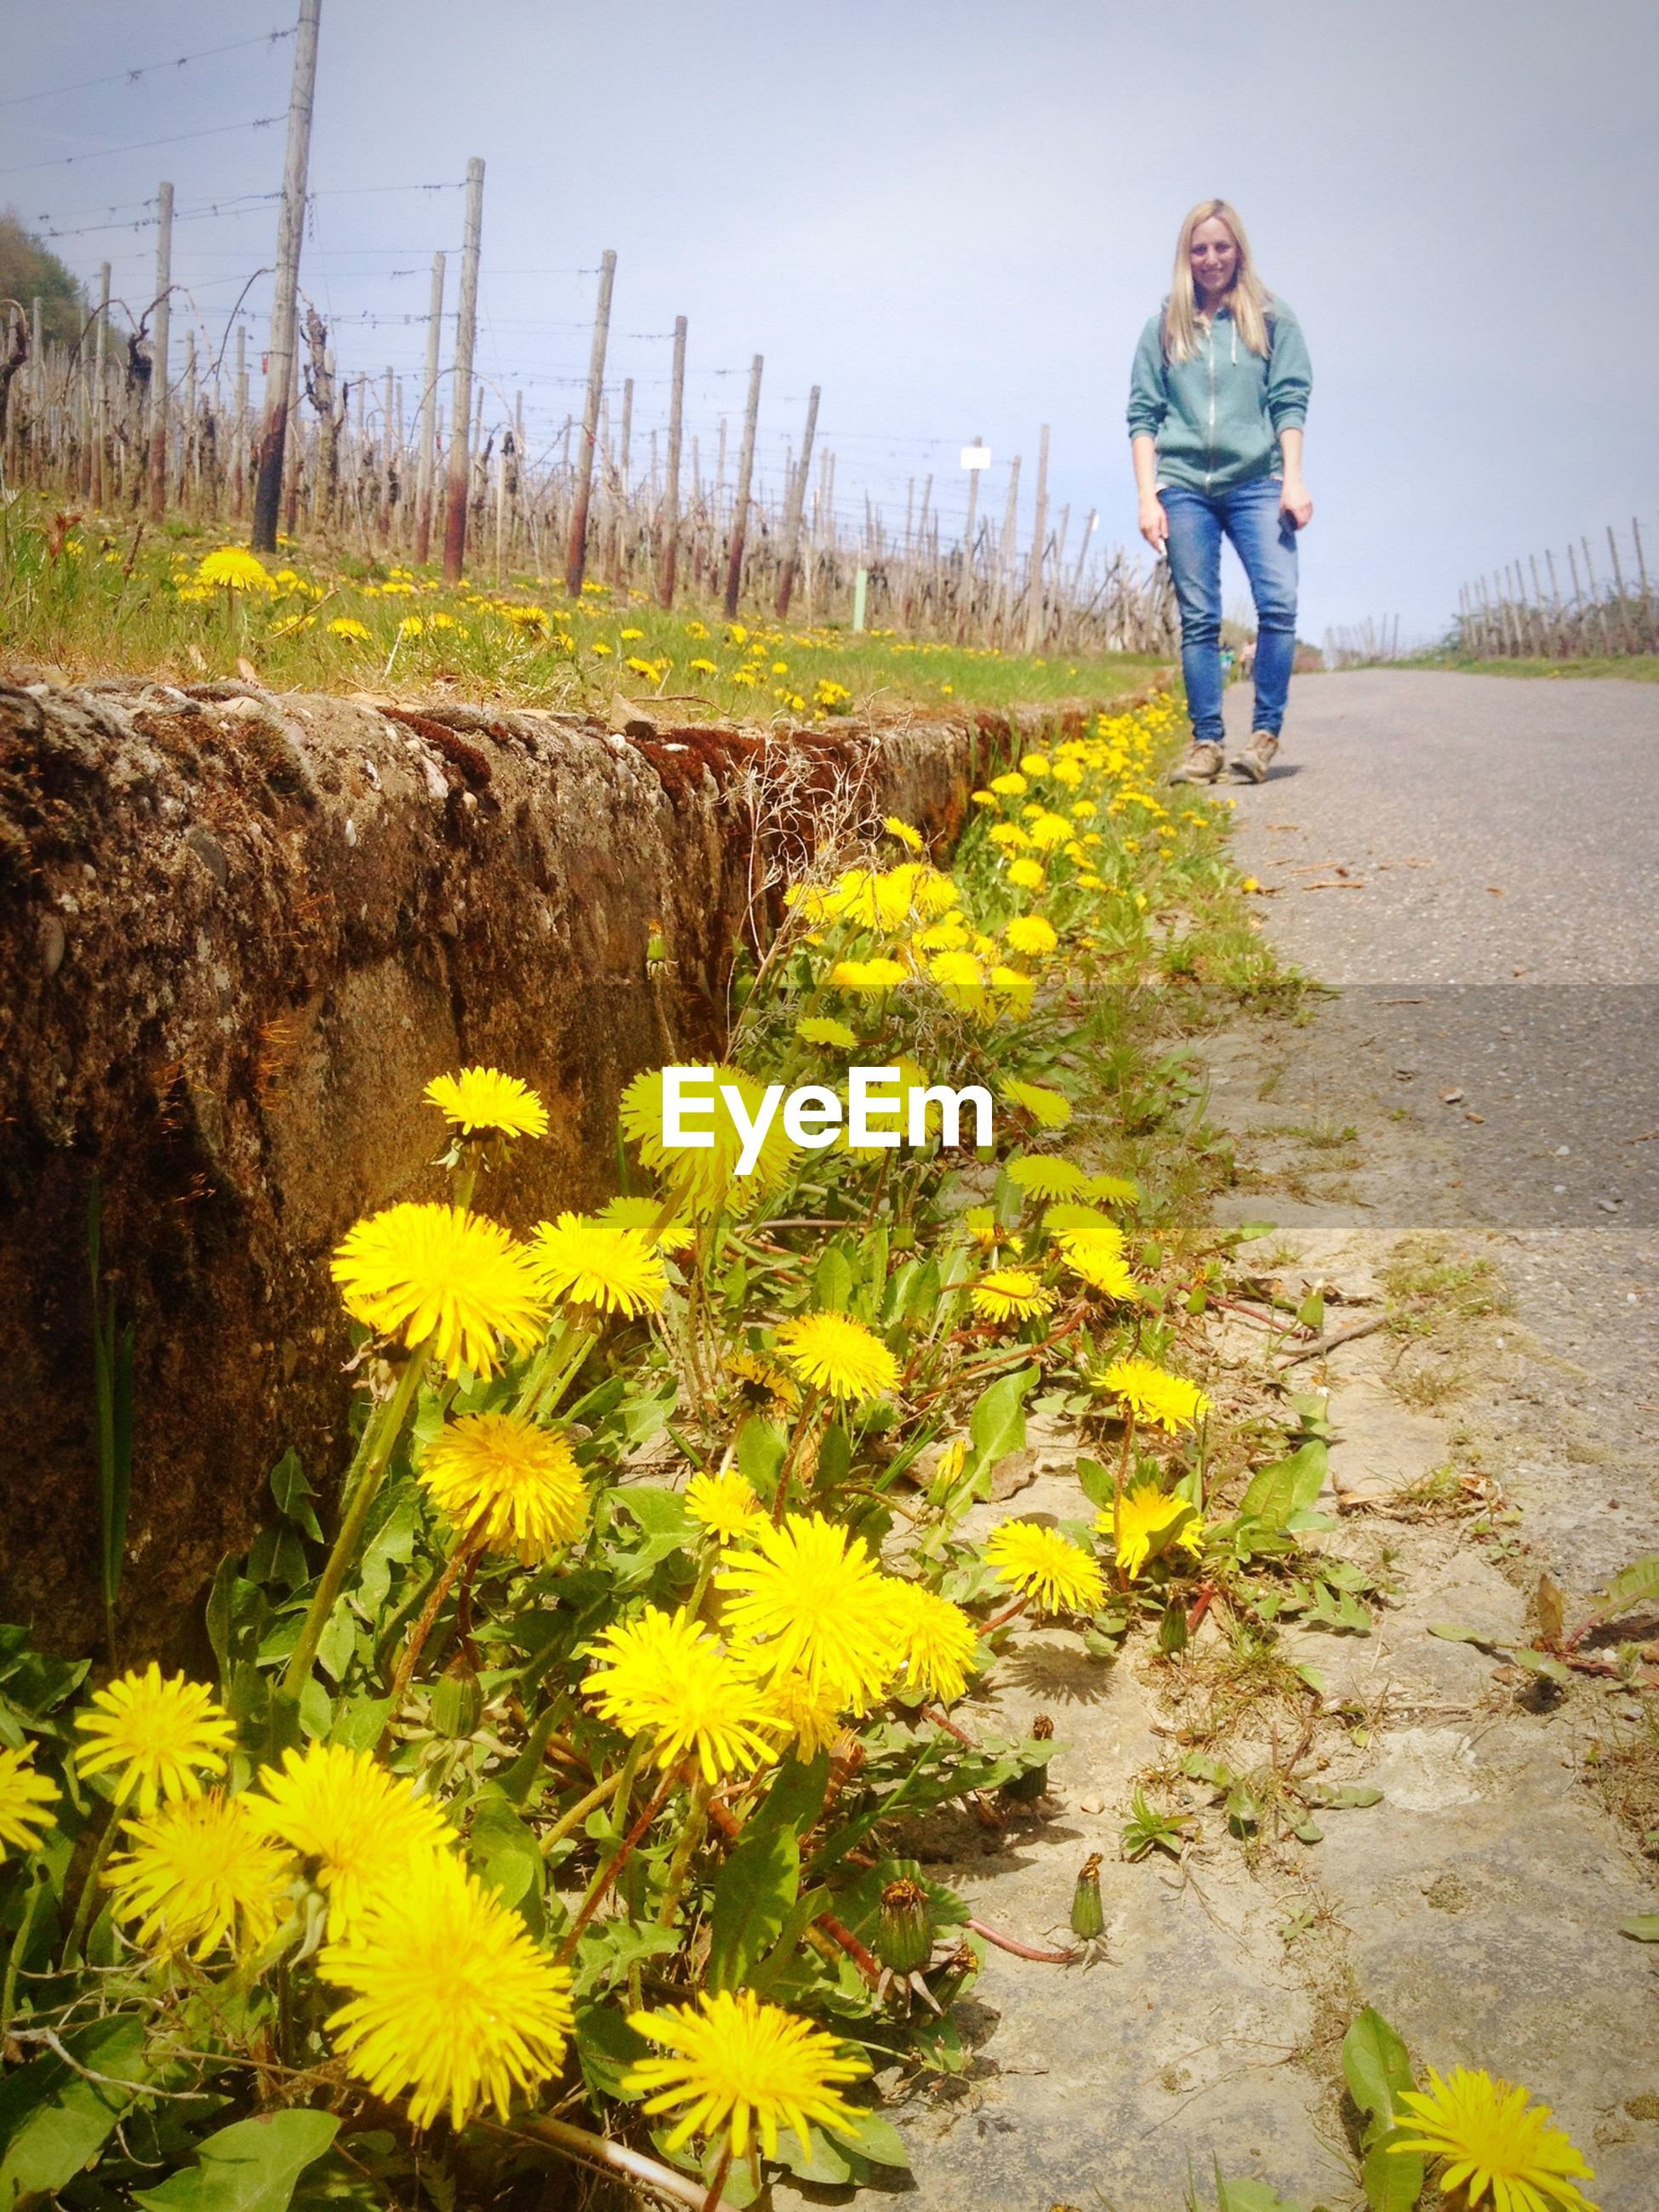 lifestyles, leisure activity, casual clothing, full length, flower, field, rear view, plant, childhood, yellow, growth, agriculture, men, standing, nature, walking, elementary age